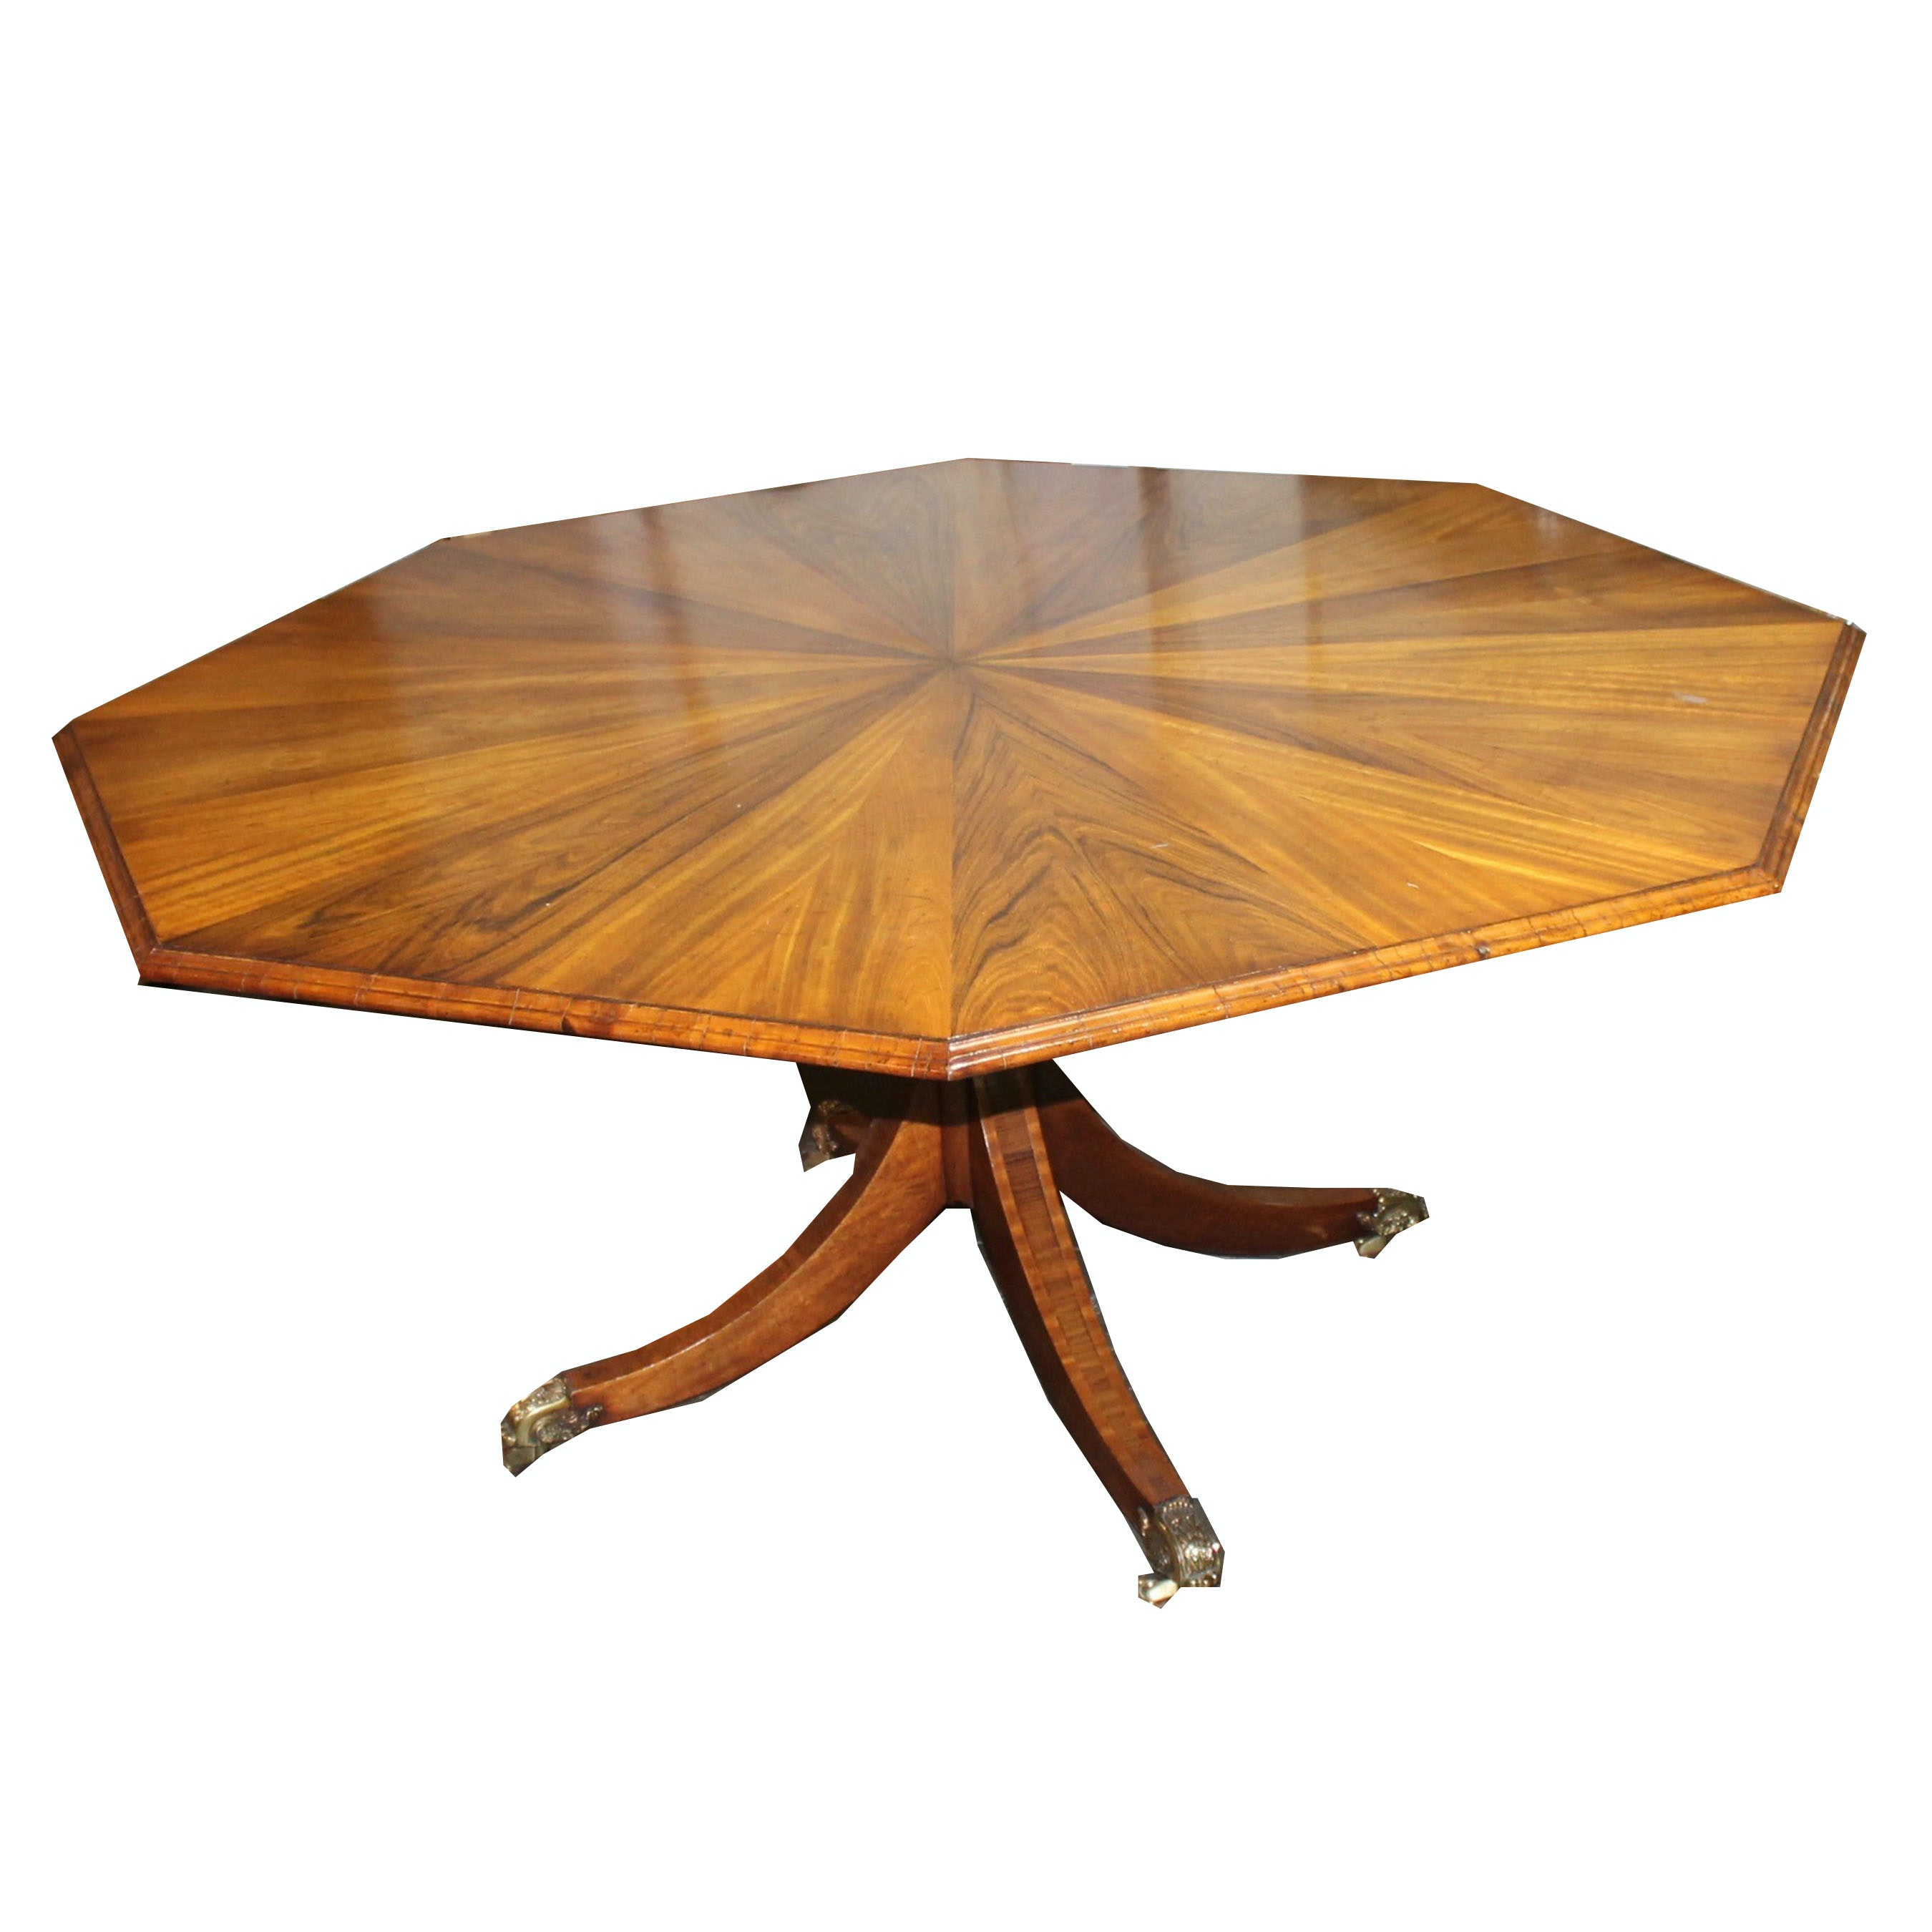 Vintage Walnut and Maple Veneer Octagonal Table